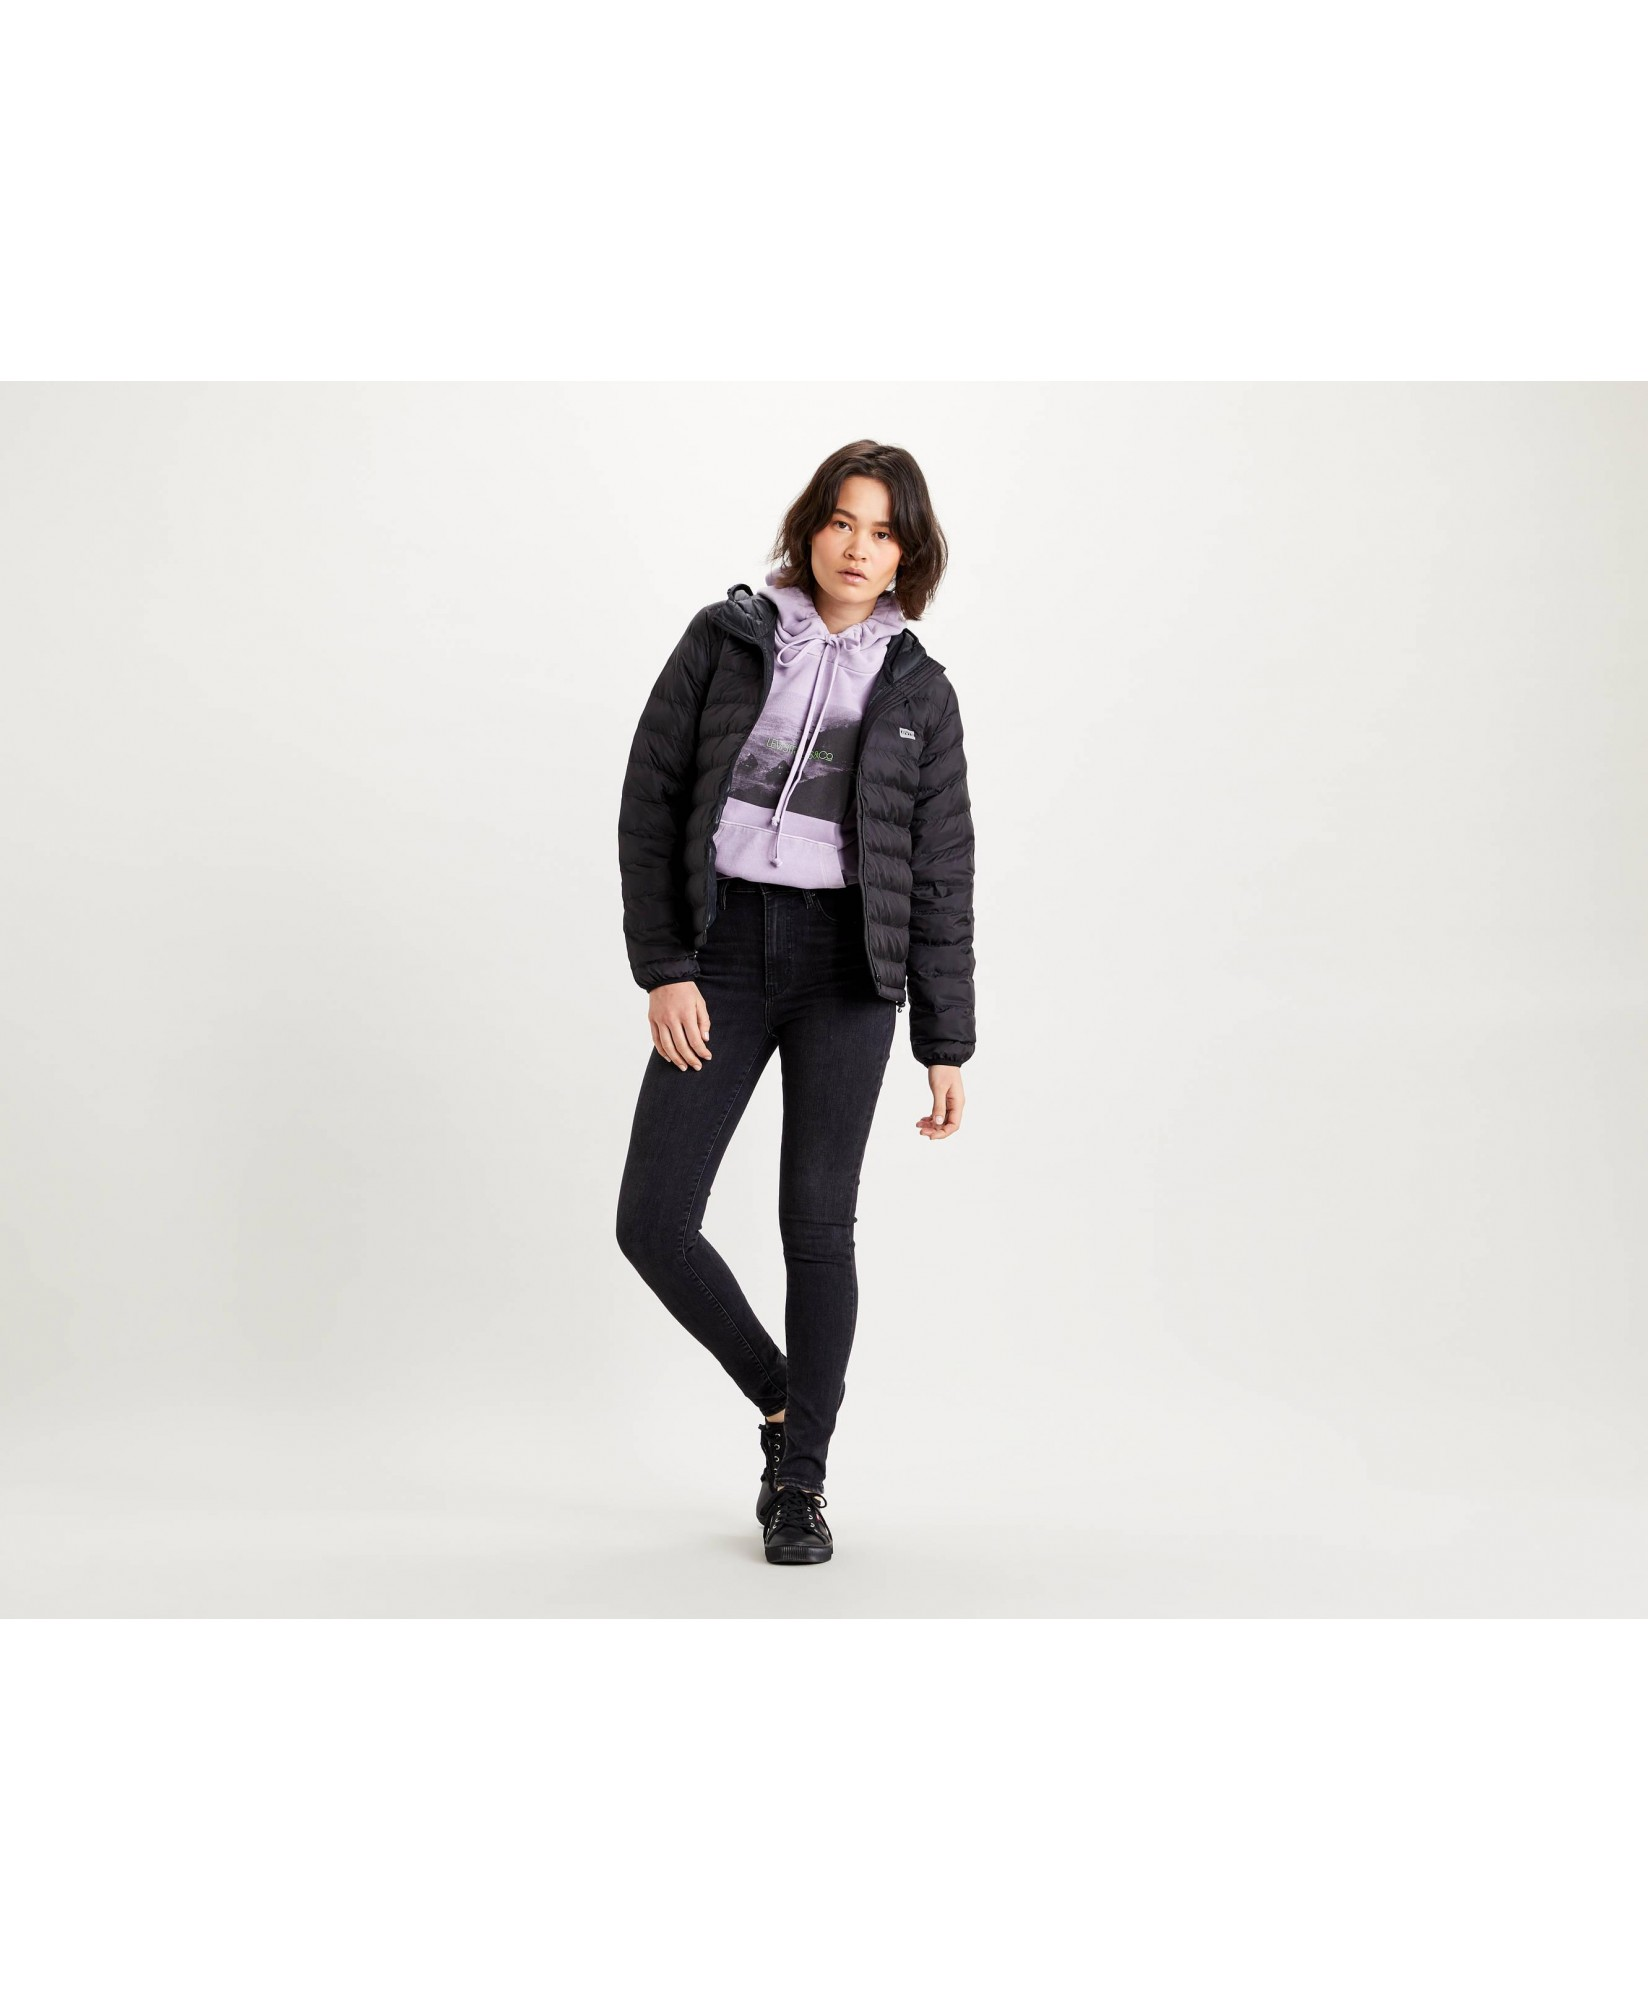 CHAQUETA PANDORA PACKABLE JACKET CHAQUETA PANDORA PACKABLE JACKET